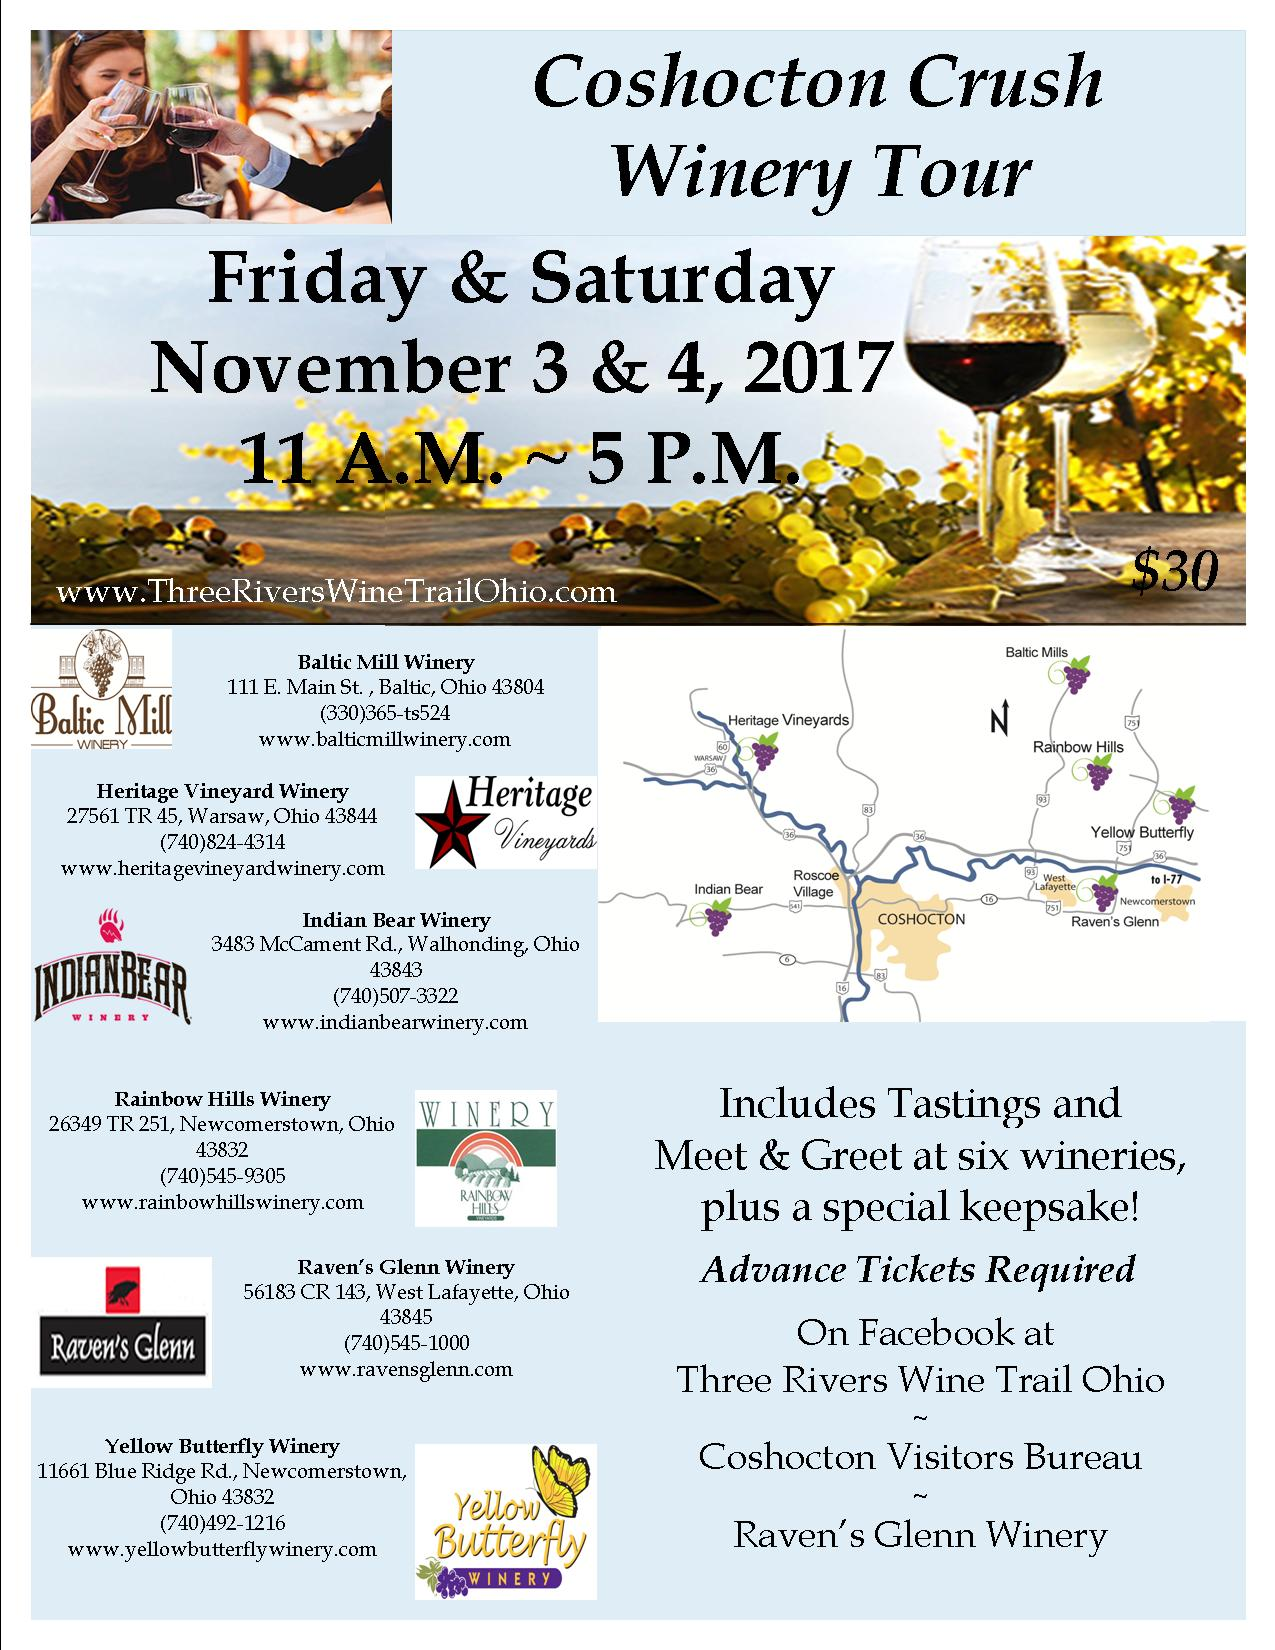 Coshocton Crush Winery Tour - Three Rivers Wine Trail